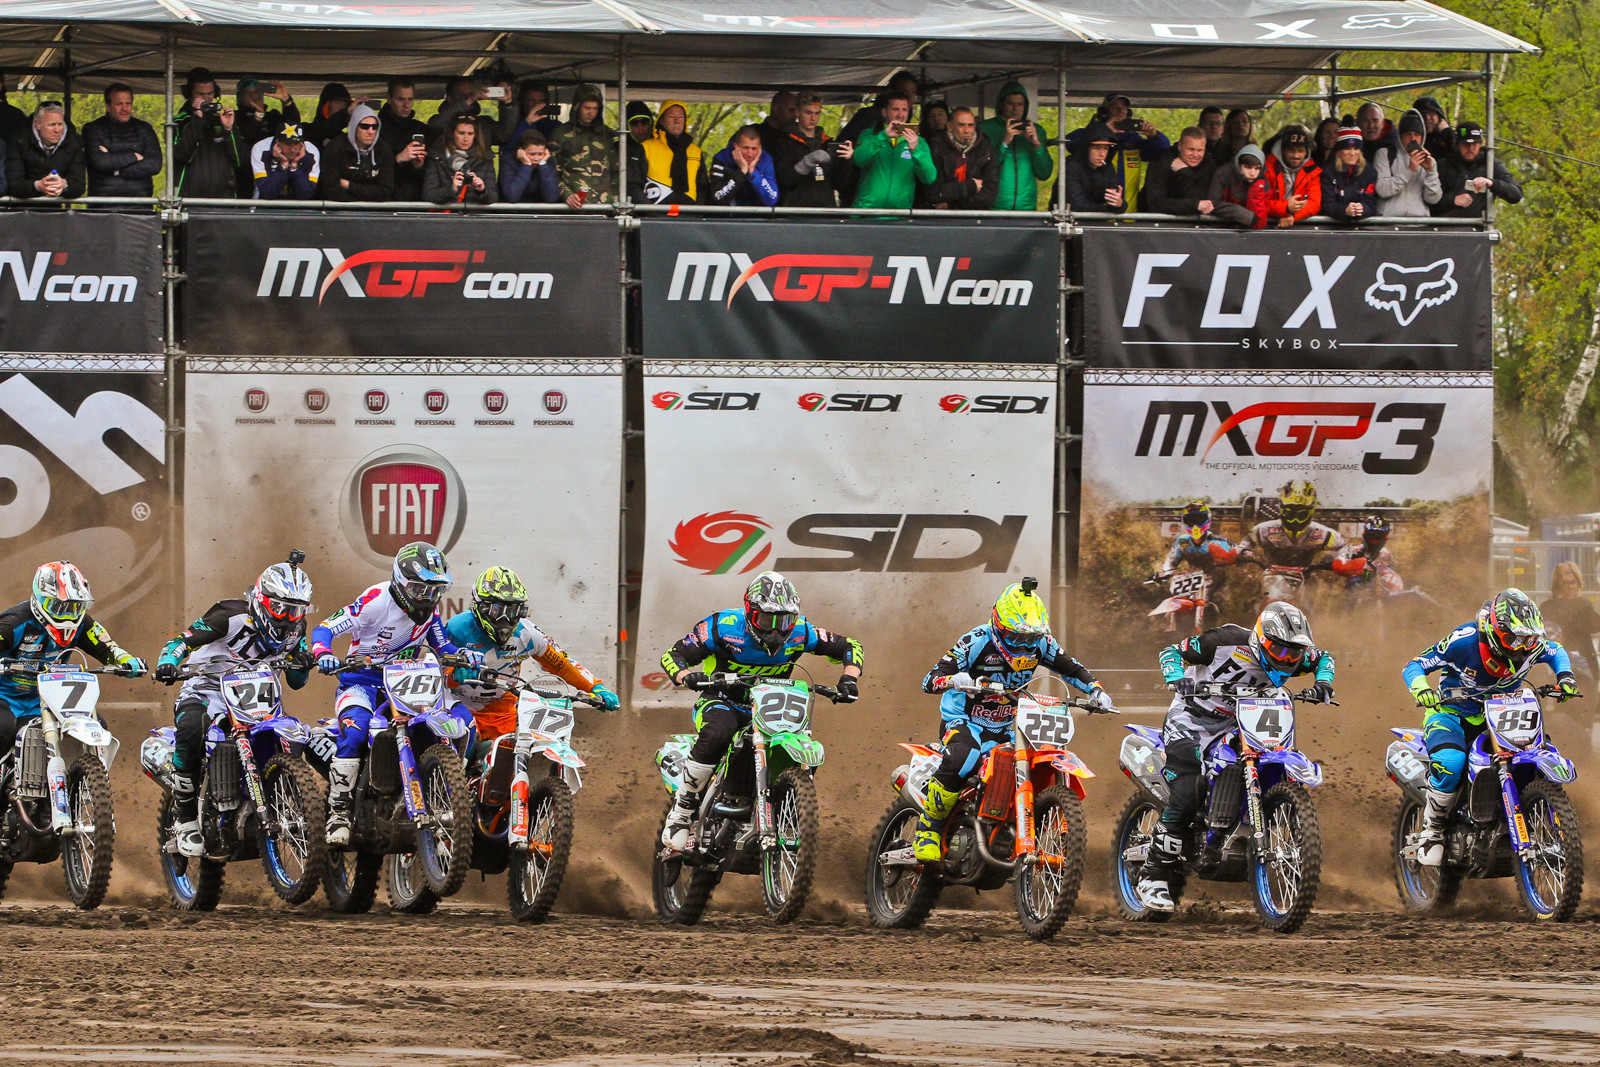 MXGP Start - Photo Blast: 2017 MXGP of Valkenswaard - Motocross Pictures - Vital MX